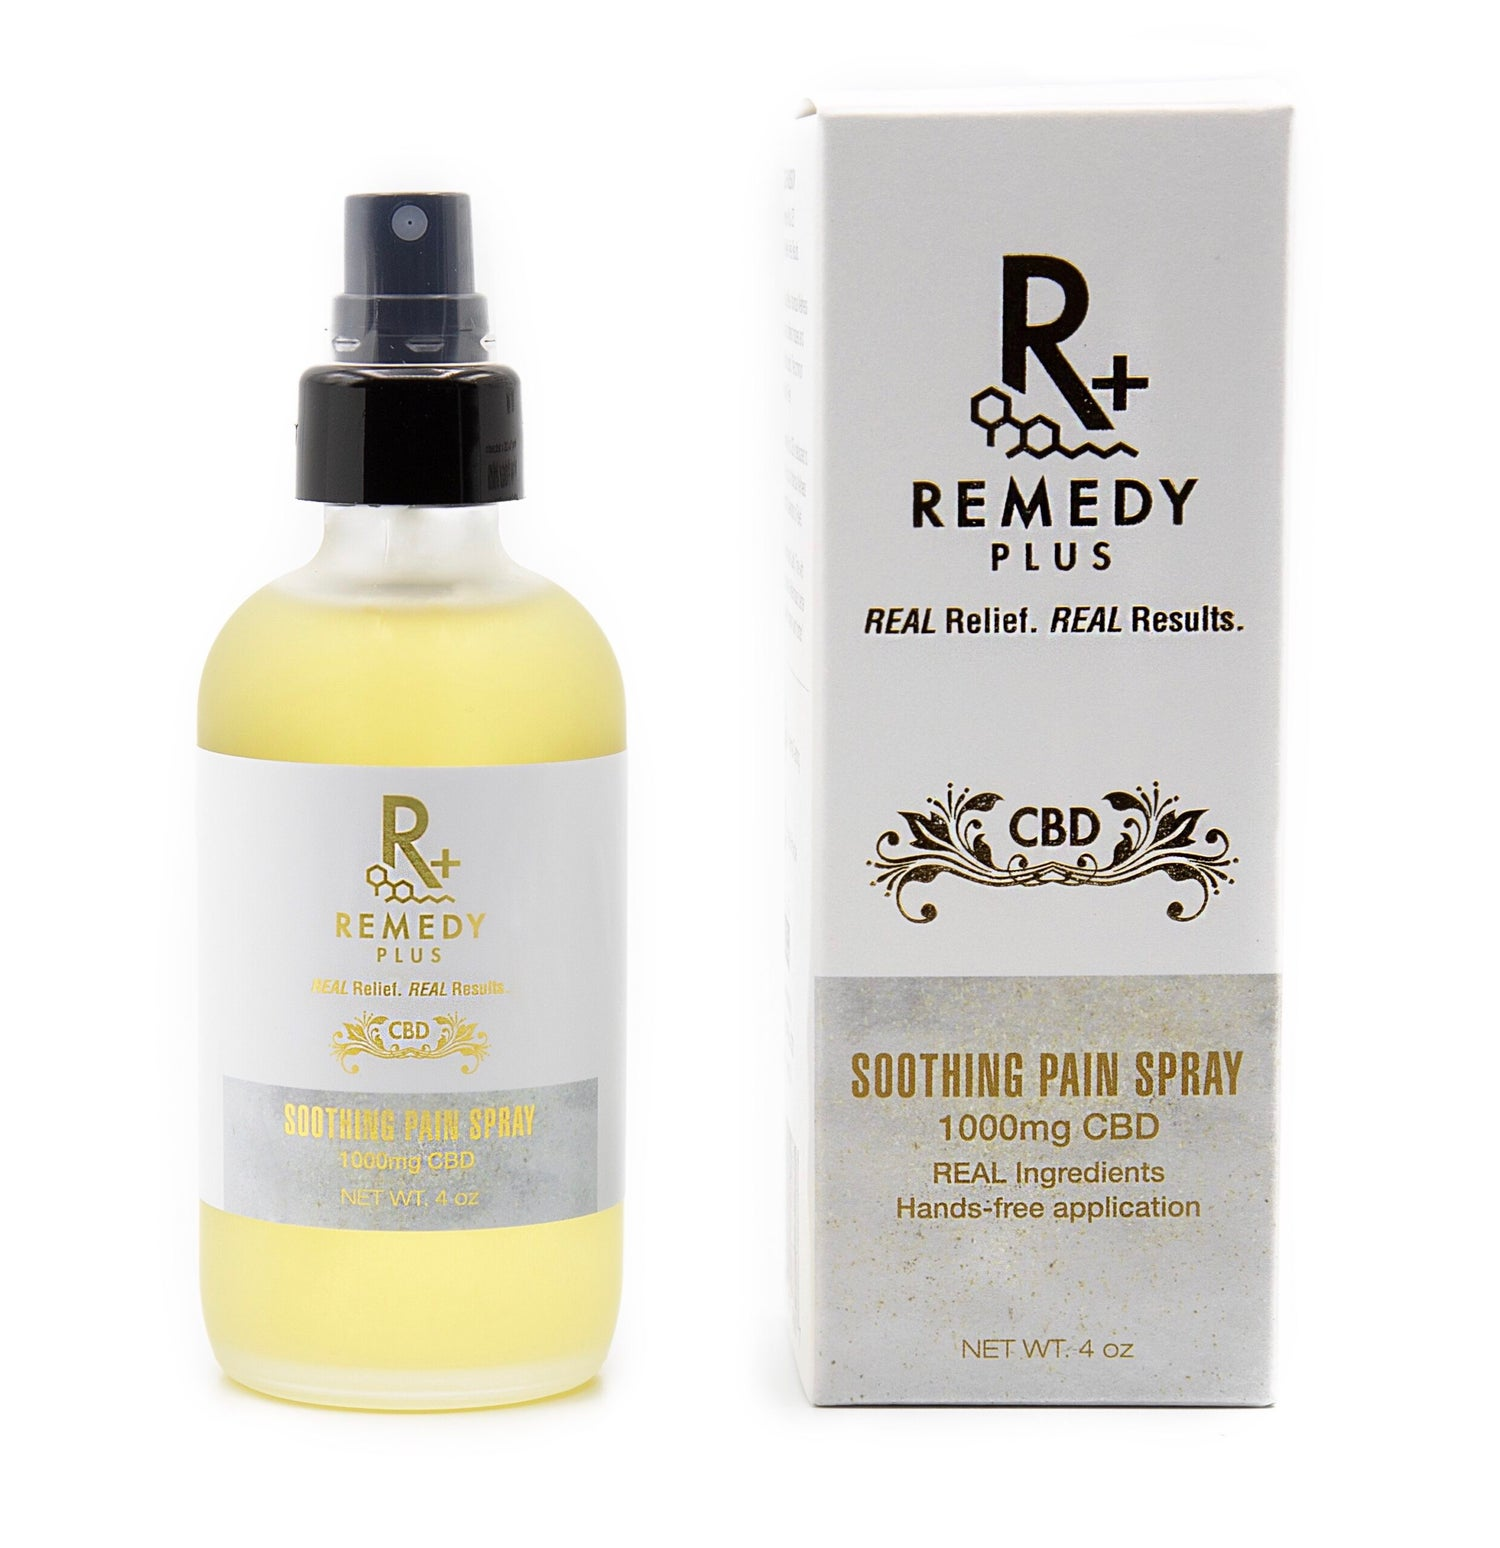 Remedy+ Soothing Pain Spray 1000mg